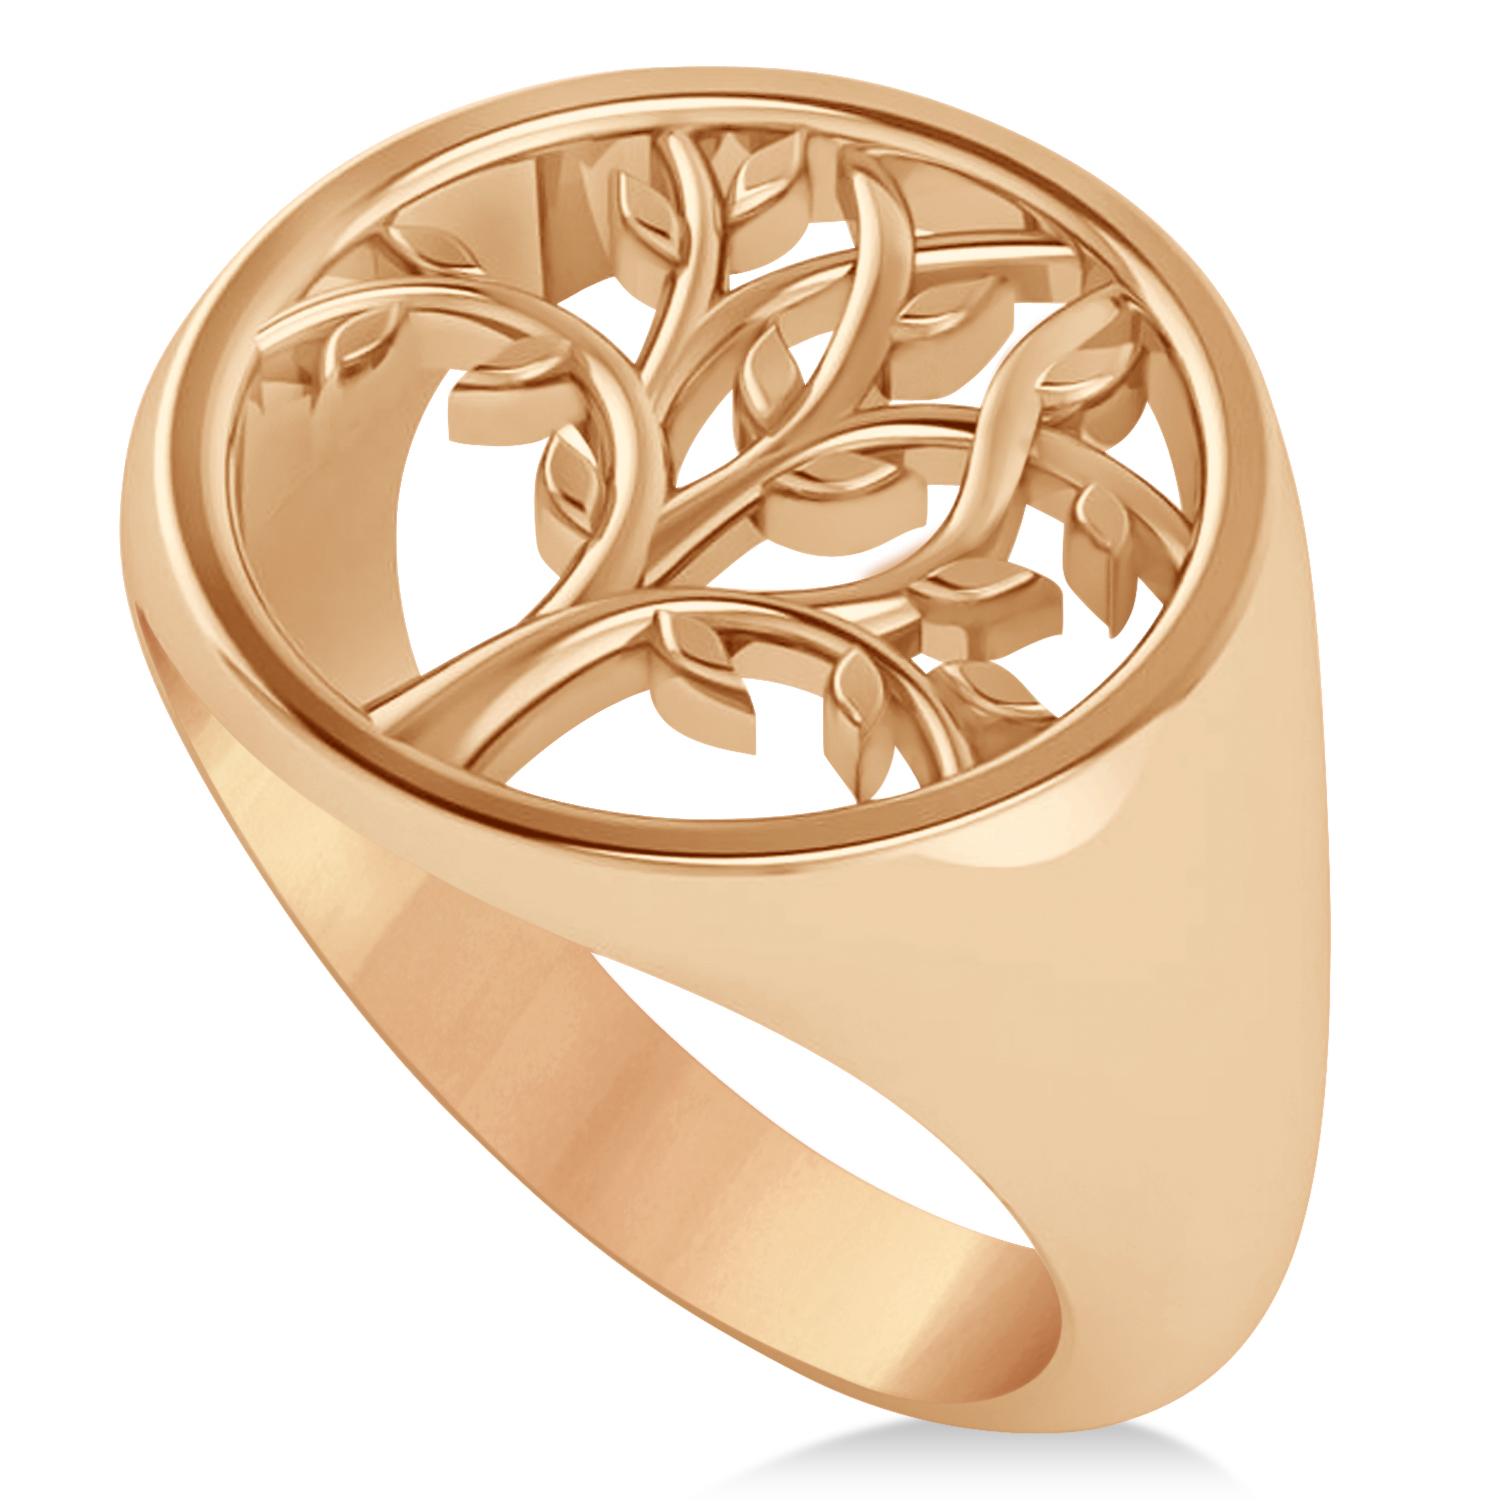 Family Tree of Life Ladies Signet Ring 14k Rose Gold